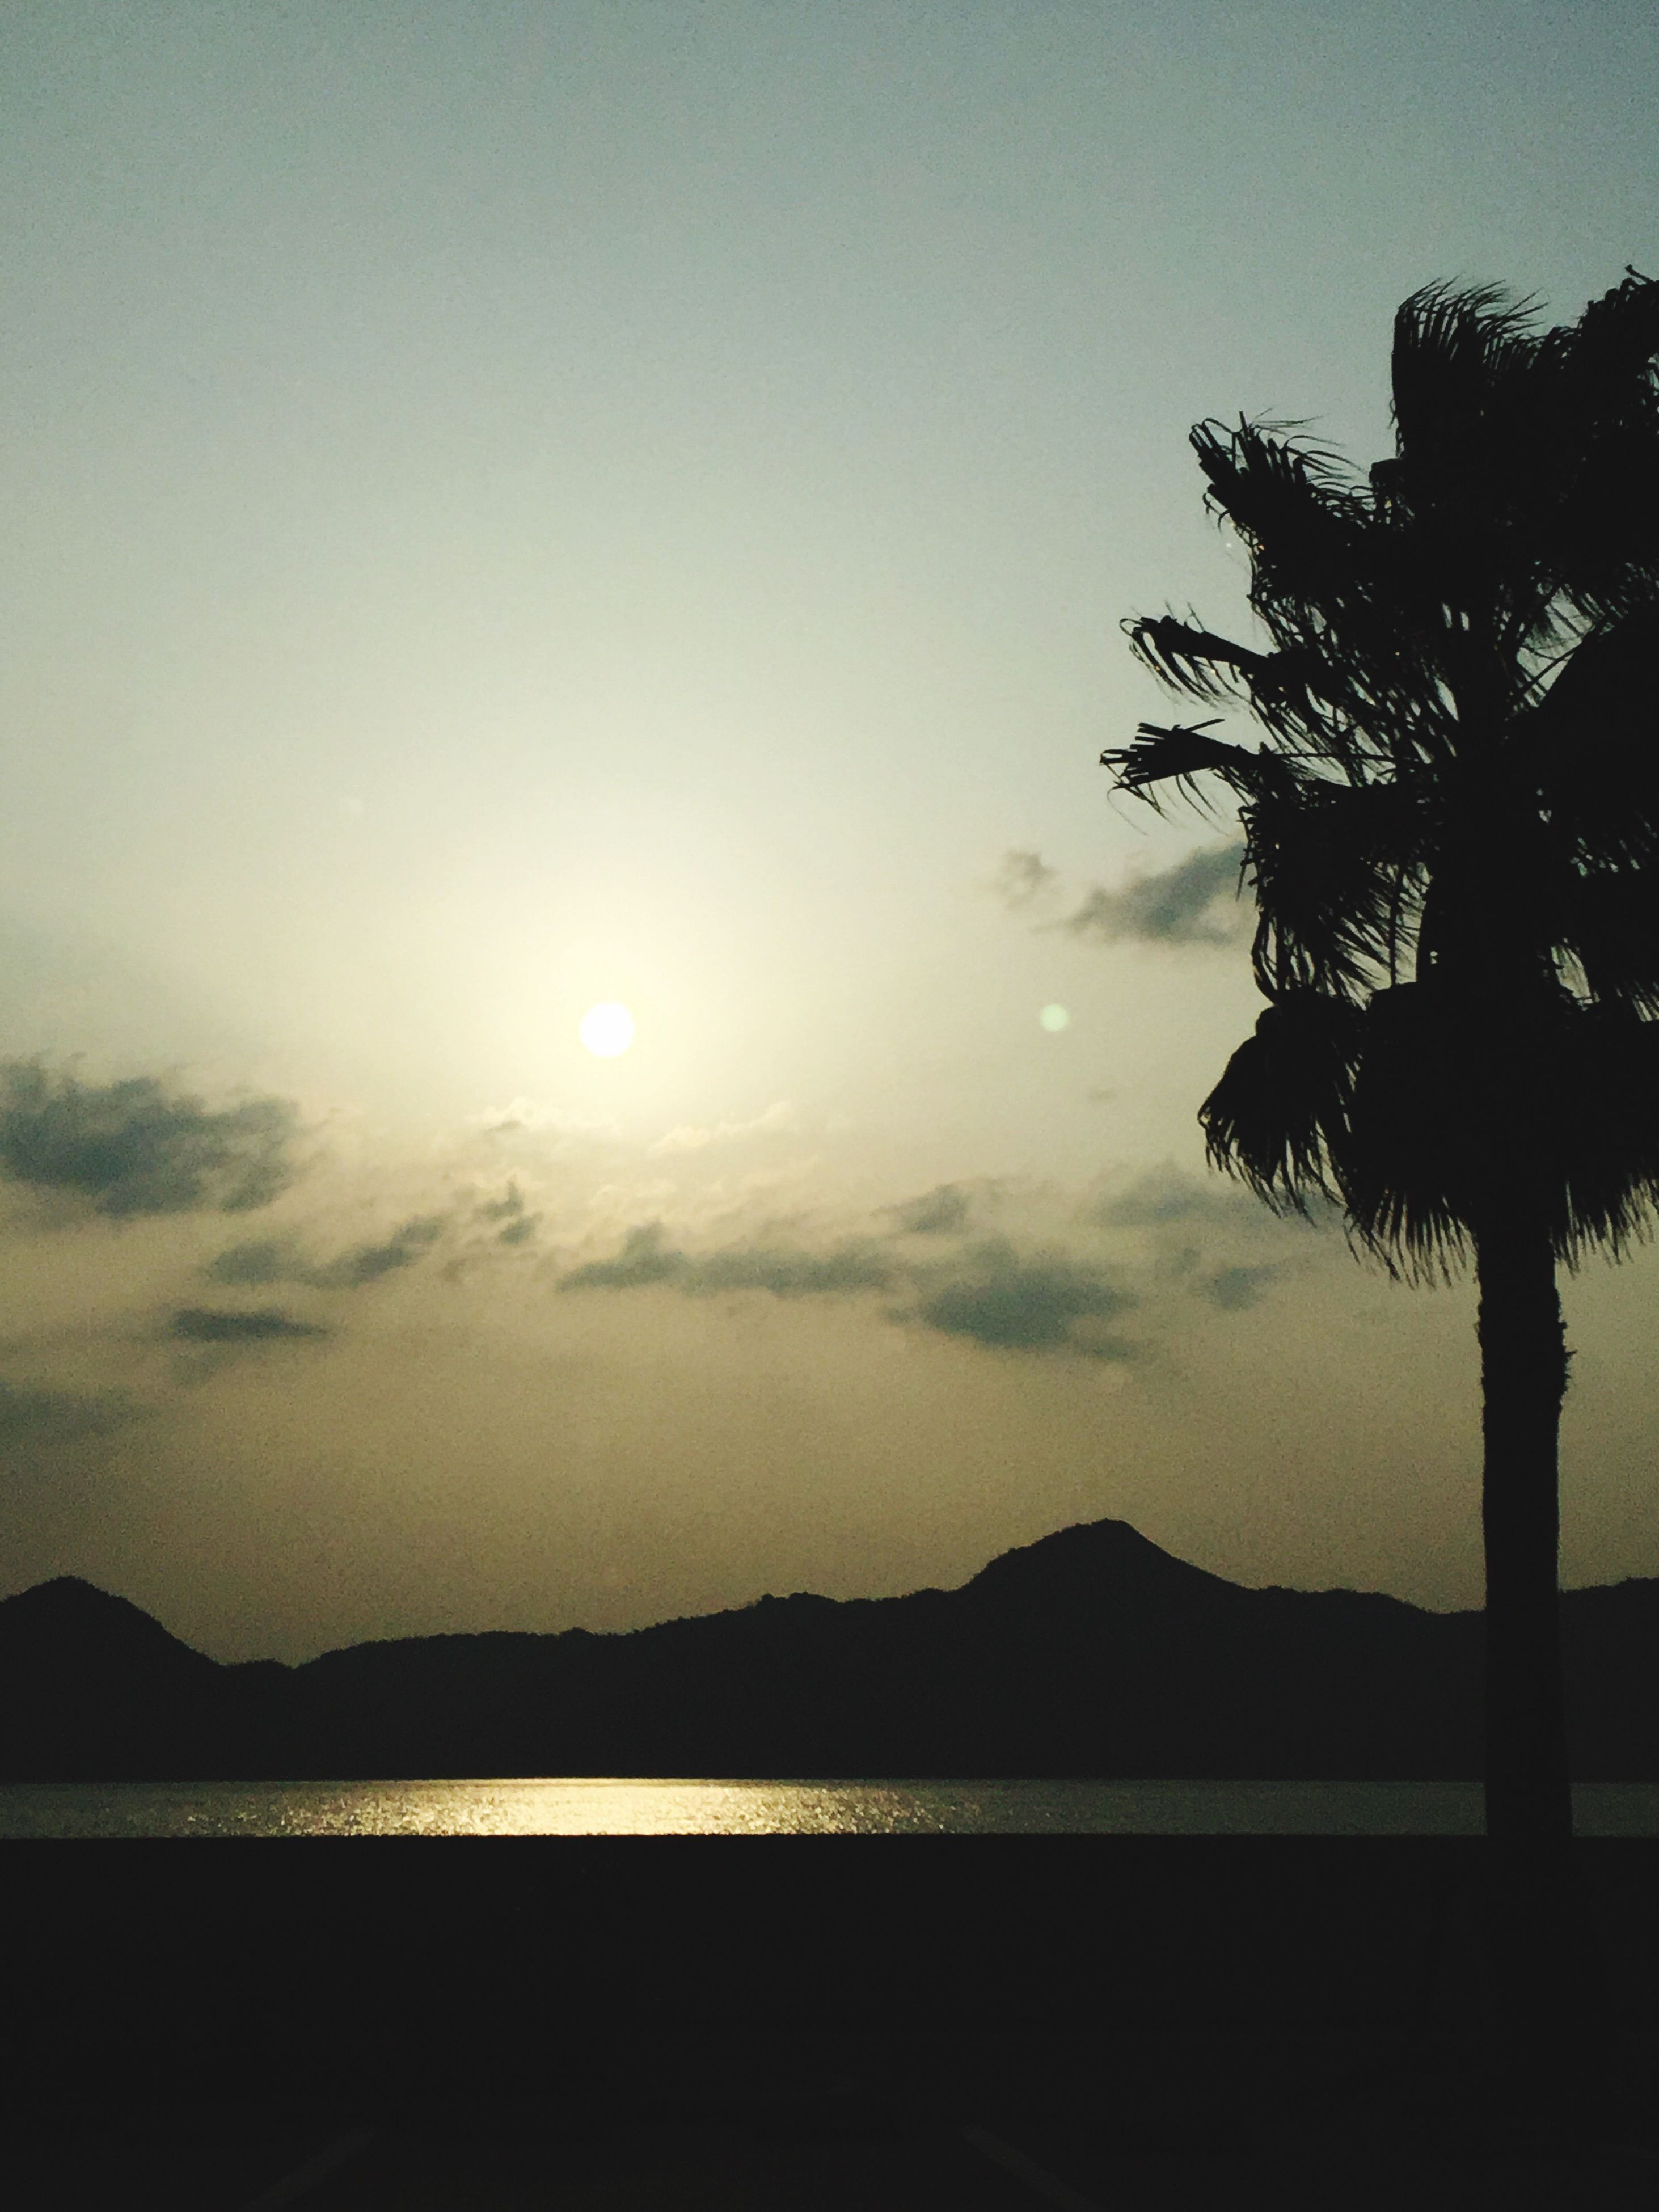 sunset, sky, reflection, nature, water, tree, tranquility, lake, beauty in nature, outdoors, scenics, no people, sun, day